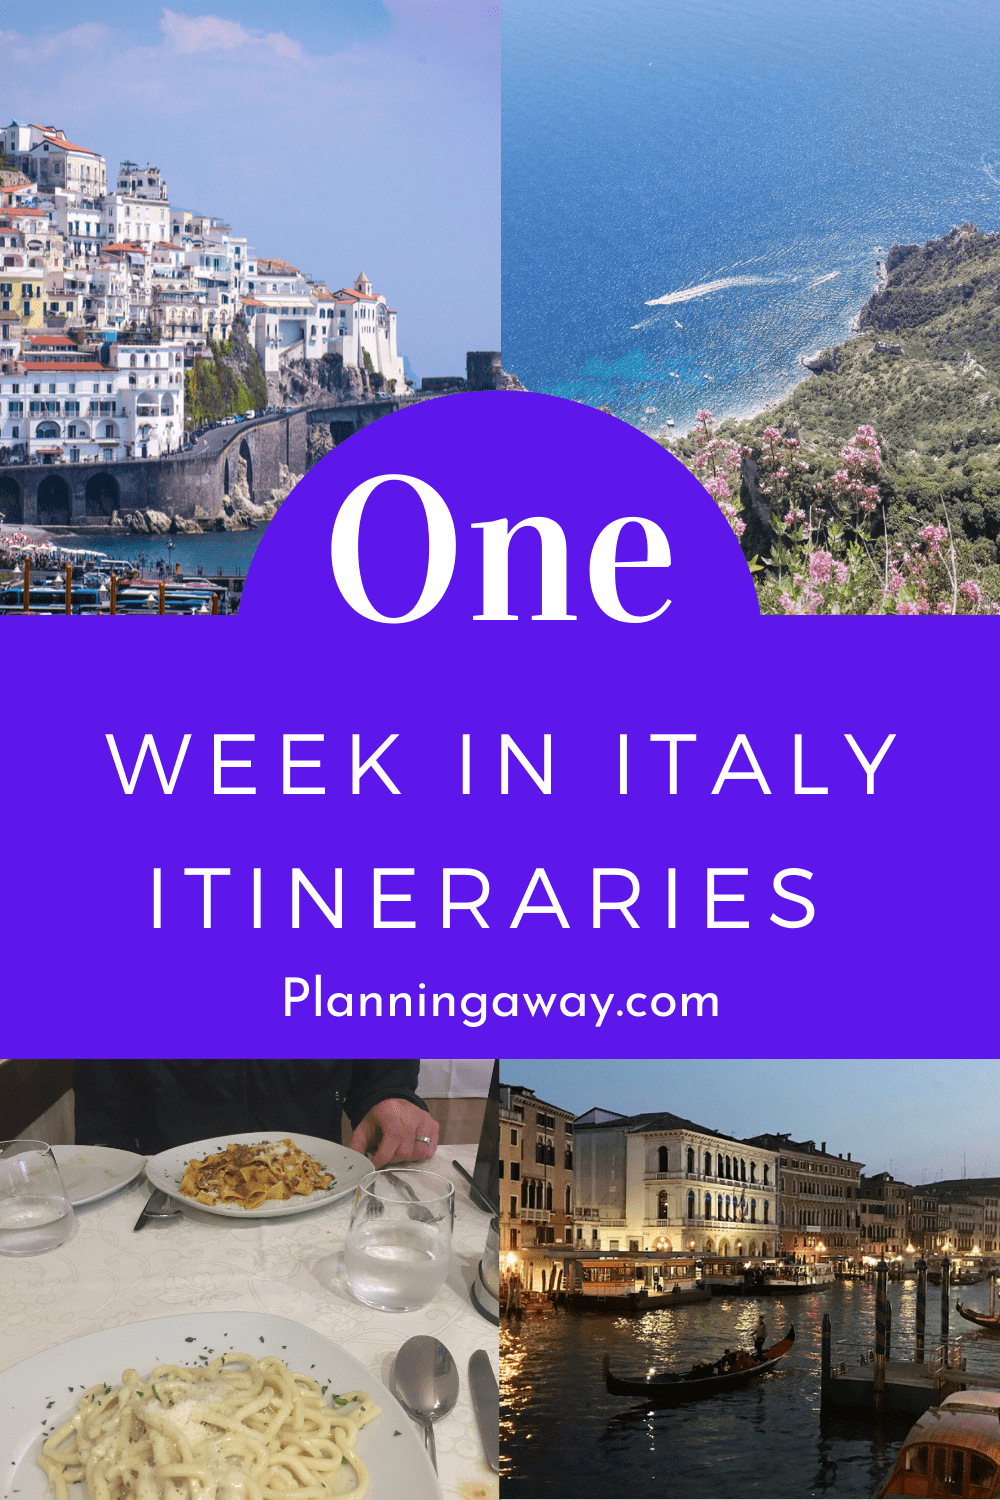 One Week in Italy Itineraries